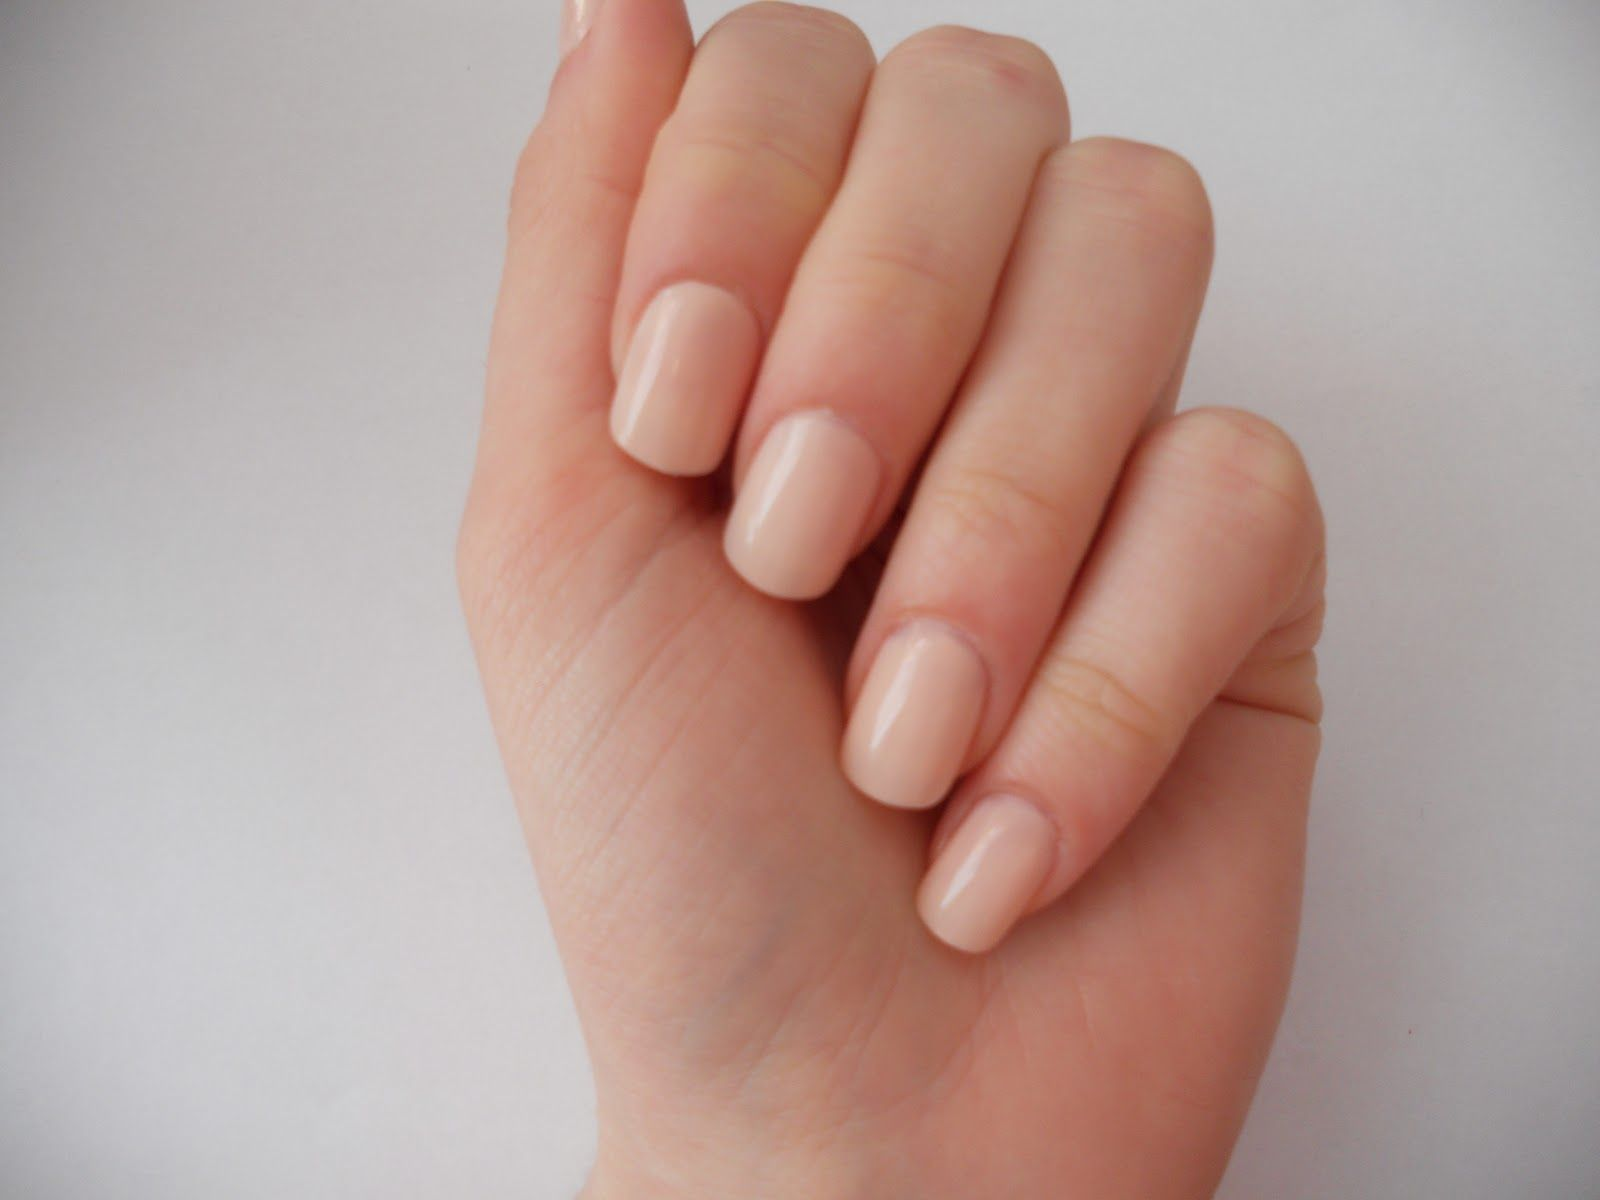 thin oval acrylic nails - Google Search | Prom hair & make up ideas ...